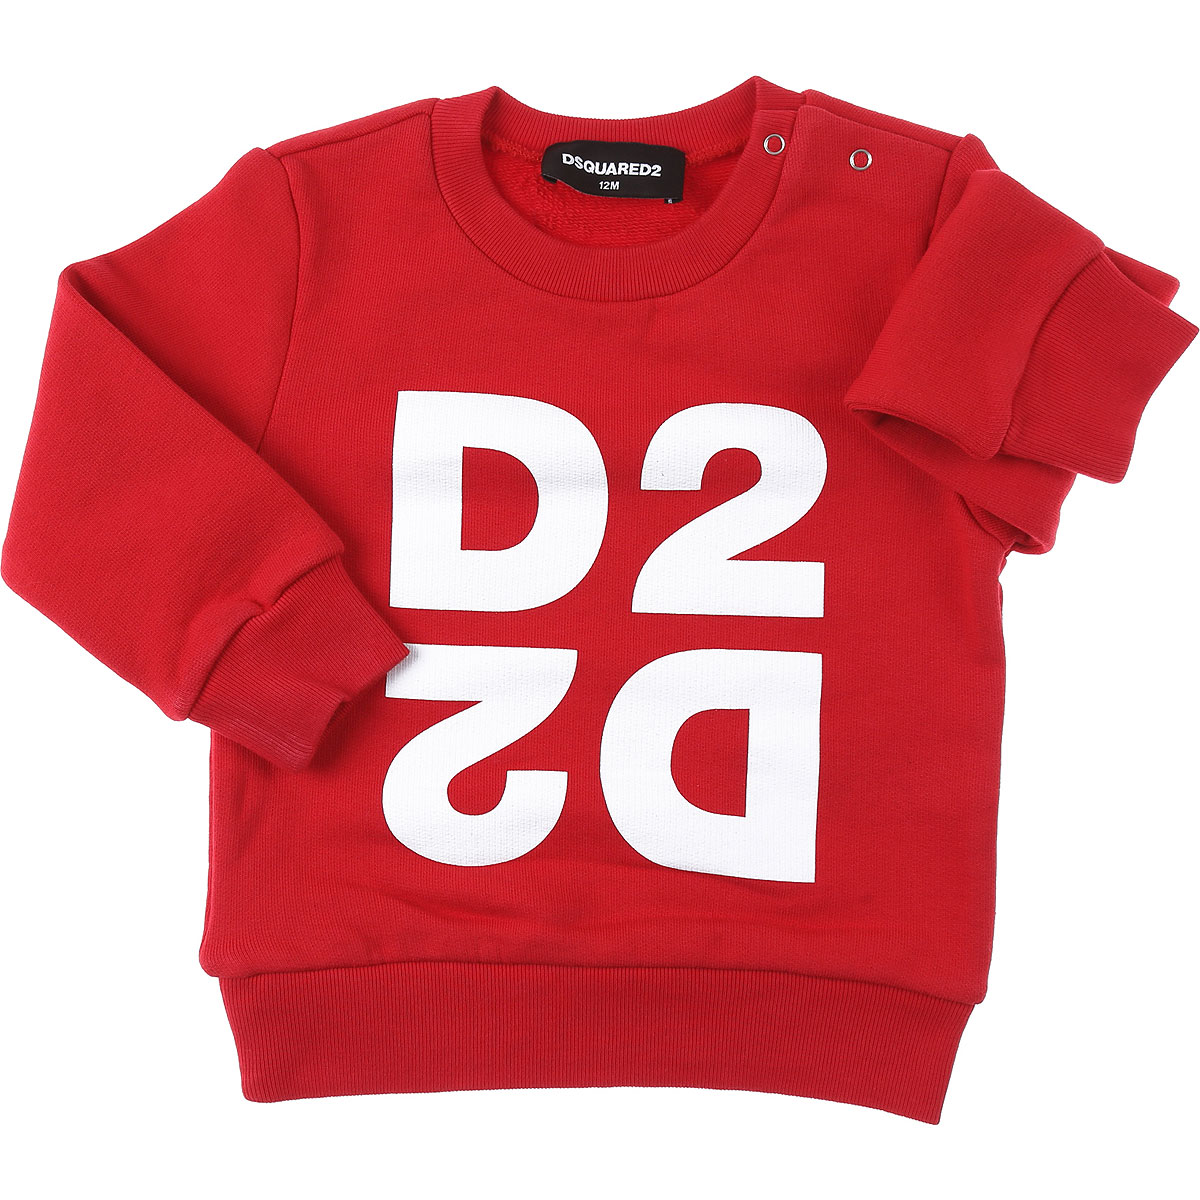 Dsquared2 Baby Sweatshirts & Hoodies for Boys On Sale, Red, Cotton, 2019, 12 M 18M 2Y 3Y 9M